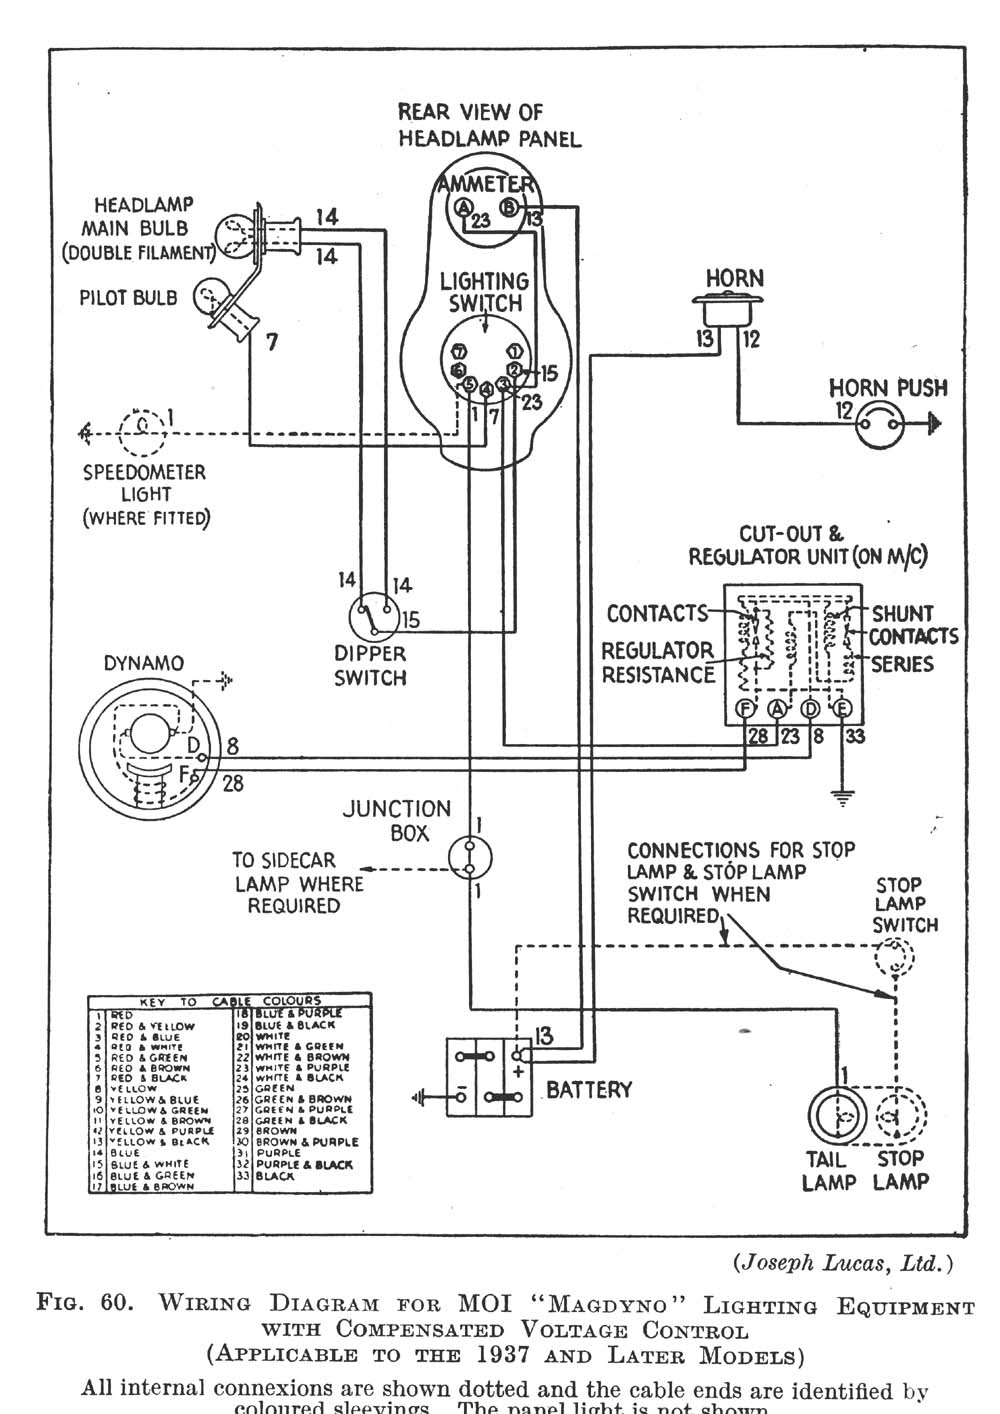 correct wiring diagram for a light switch with Index on Wiring A Receptacle With Lights Wiring Diagrams together with 220V Photocell Light Switch Outdoor Light 666348345 in addition 6hc4b Honda Accord Ex No Start 1991 Accord Ex F22a4 Relay Checks in addition 33s7i Hi Chevy Mini Astro Van 1994 Back Light Stop Working also Index.